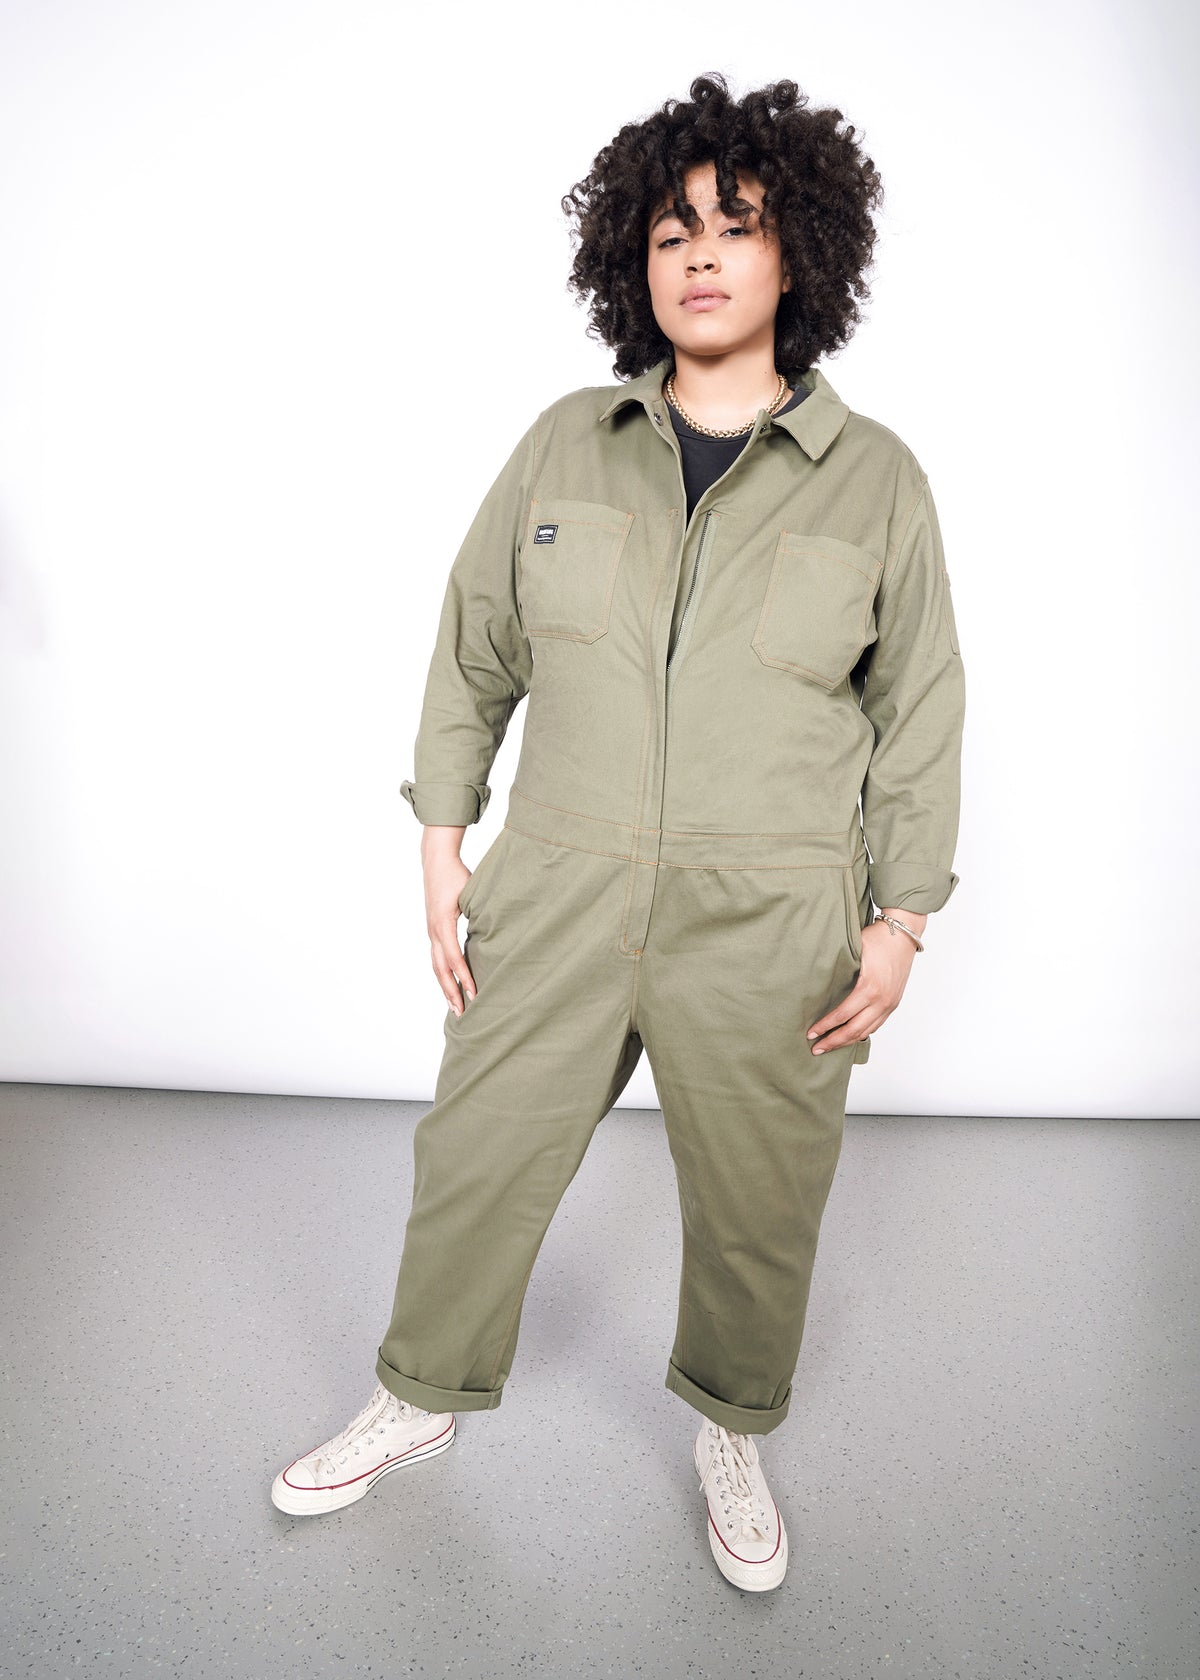 Tambrie is wearing the olive long sleeved coveralls in size XXL, with a gray tee and white converse